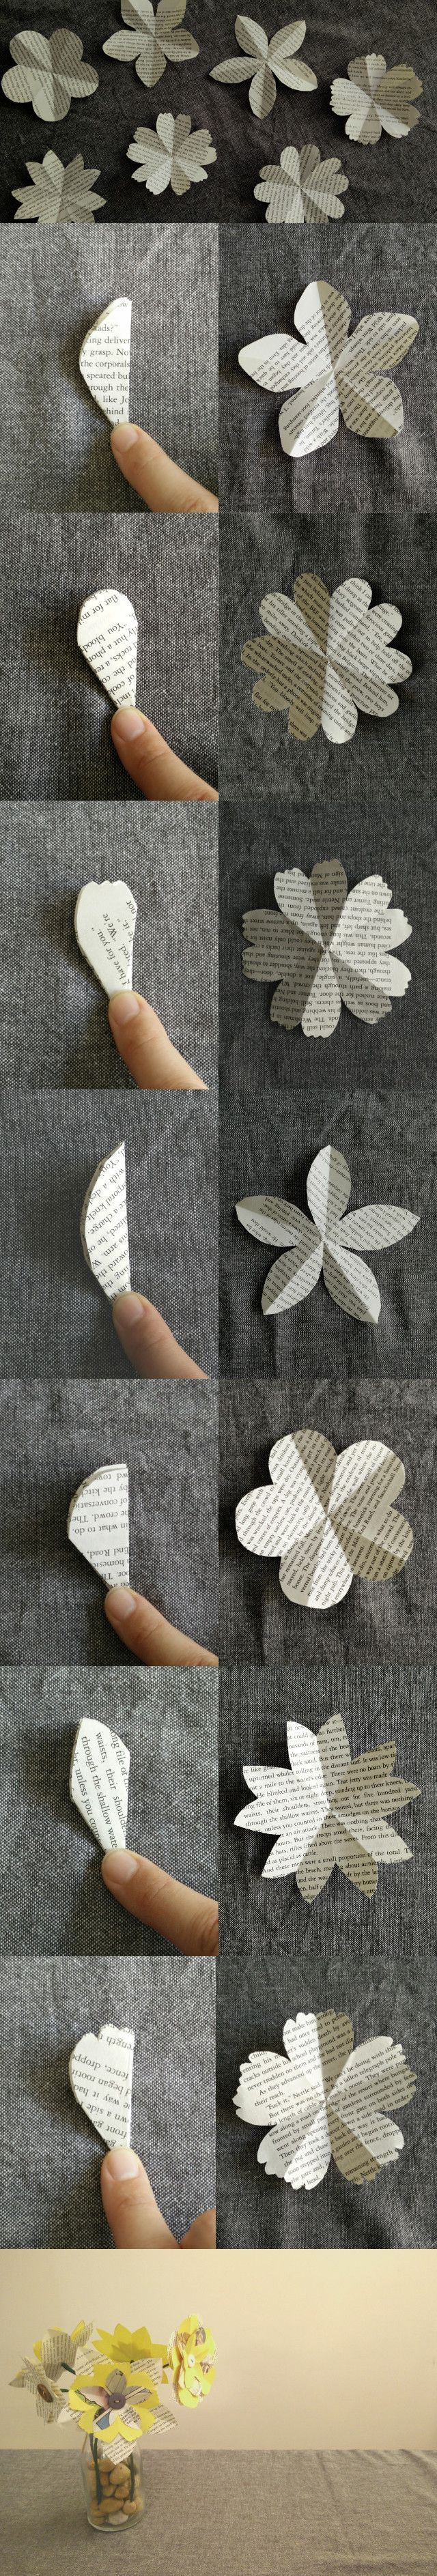 Making paper flowers out of recycled books, buttons and string